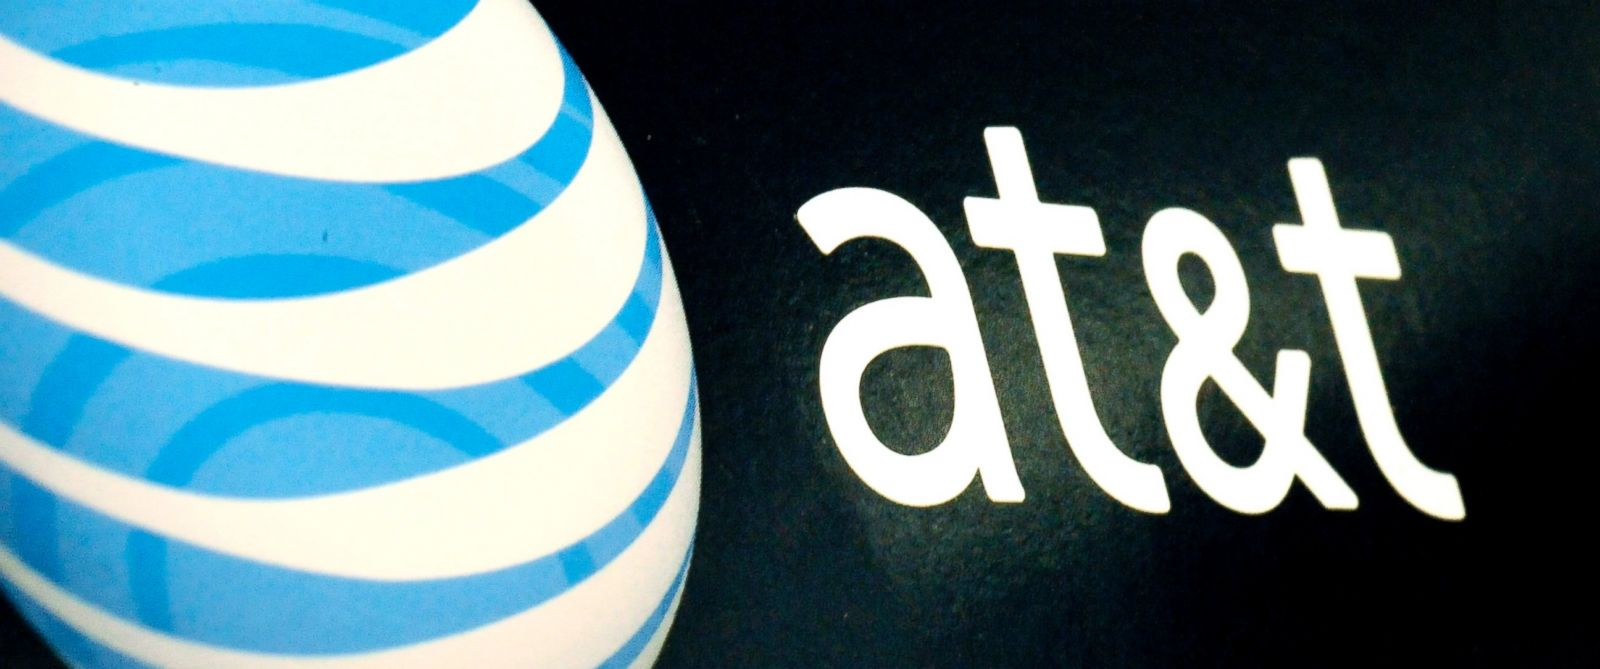 PHOTO: In this Oct. 19, 2009 file photo, the AT&T logo is on display at a RadioShack store in Gloucester, Mass. On April 21, 2014, AT&T said that it plans a major expansion of super-fast Internet services to cover as many as 100 municipalities.